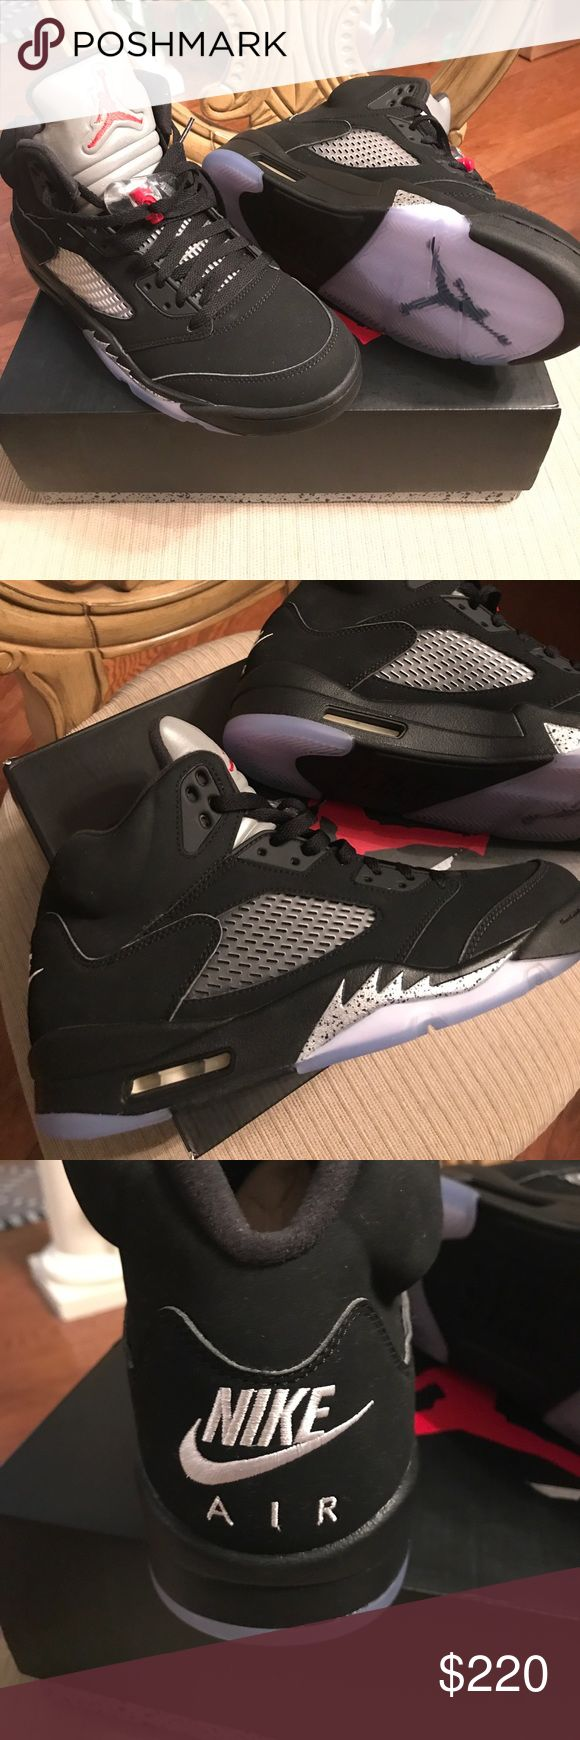 Nike Air Jordans retro 5 OG Deadstock New PayPal only, No trades Jordan Shoes  Sneakers